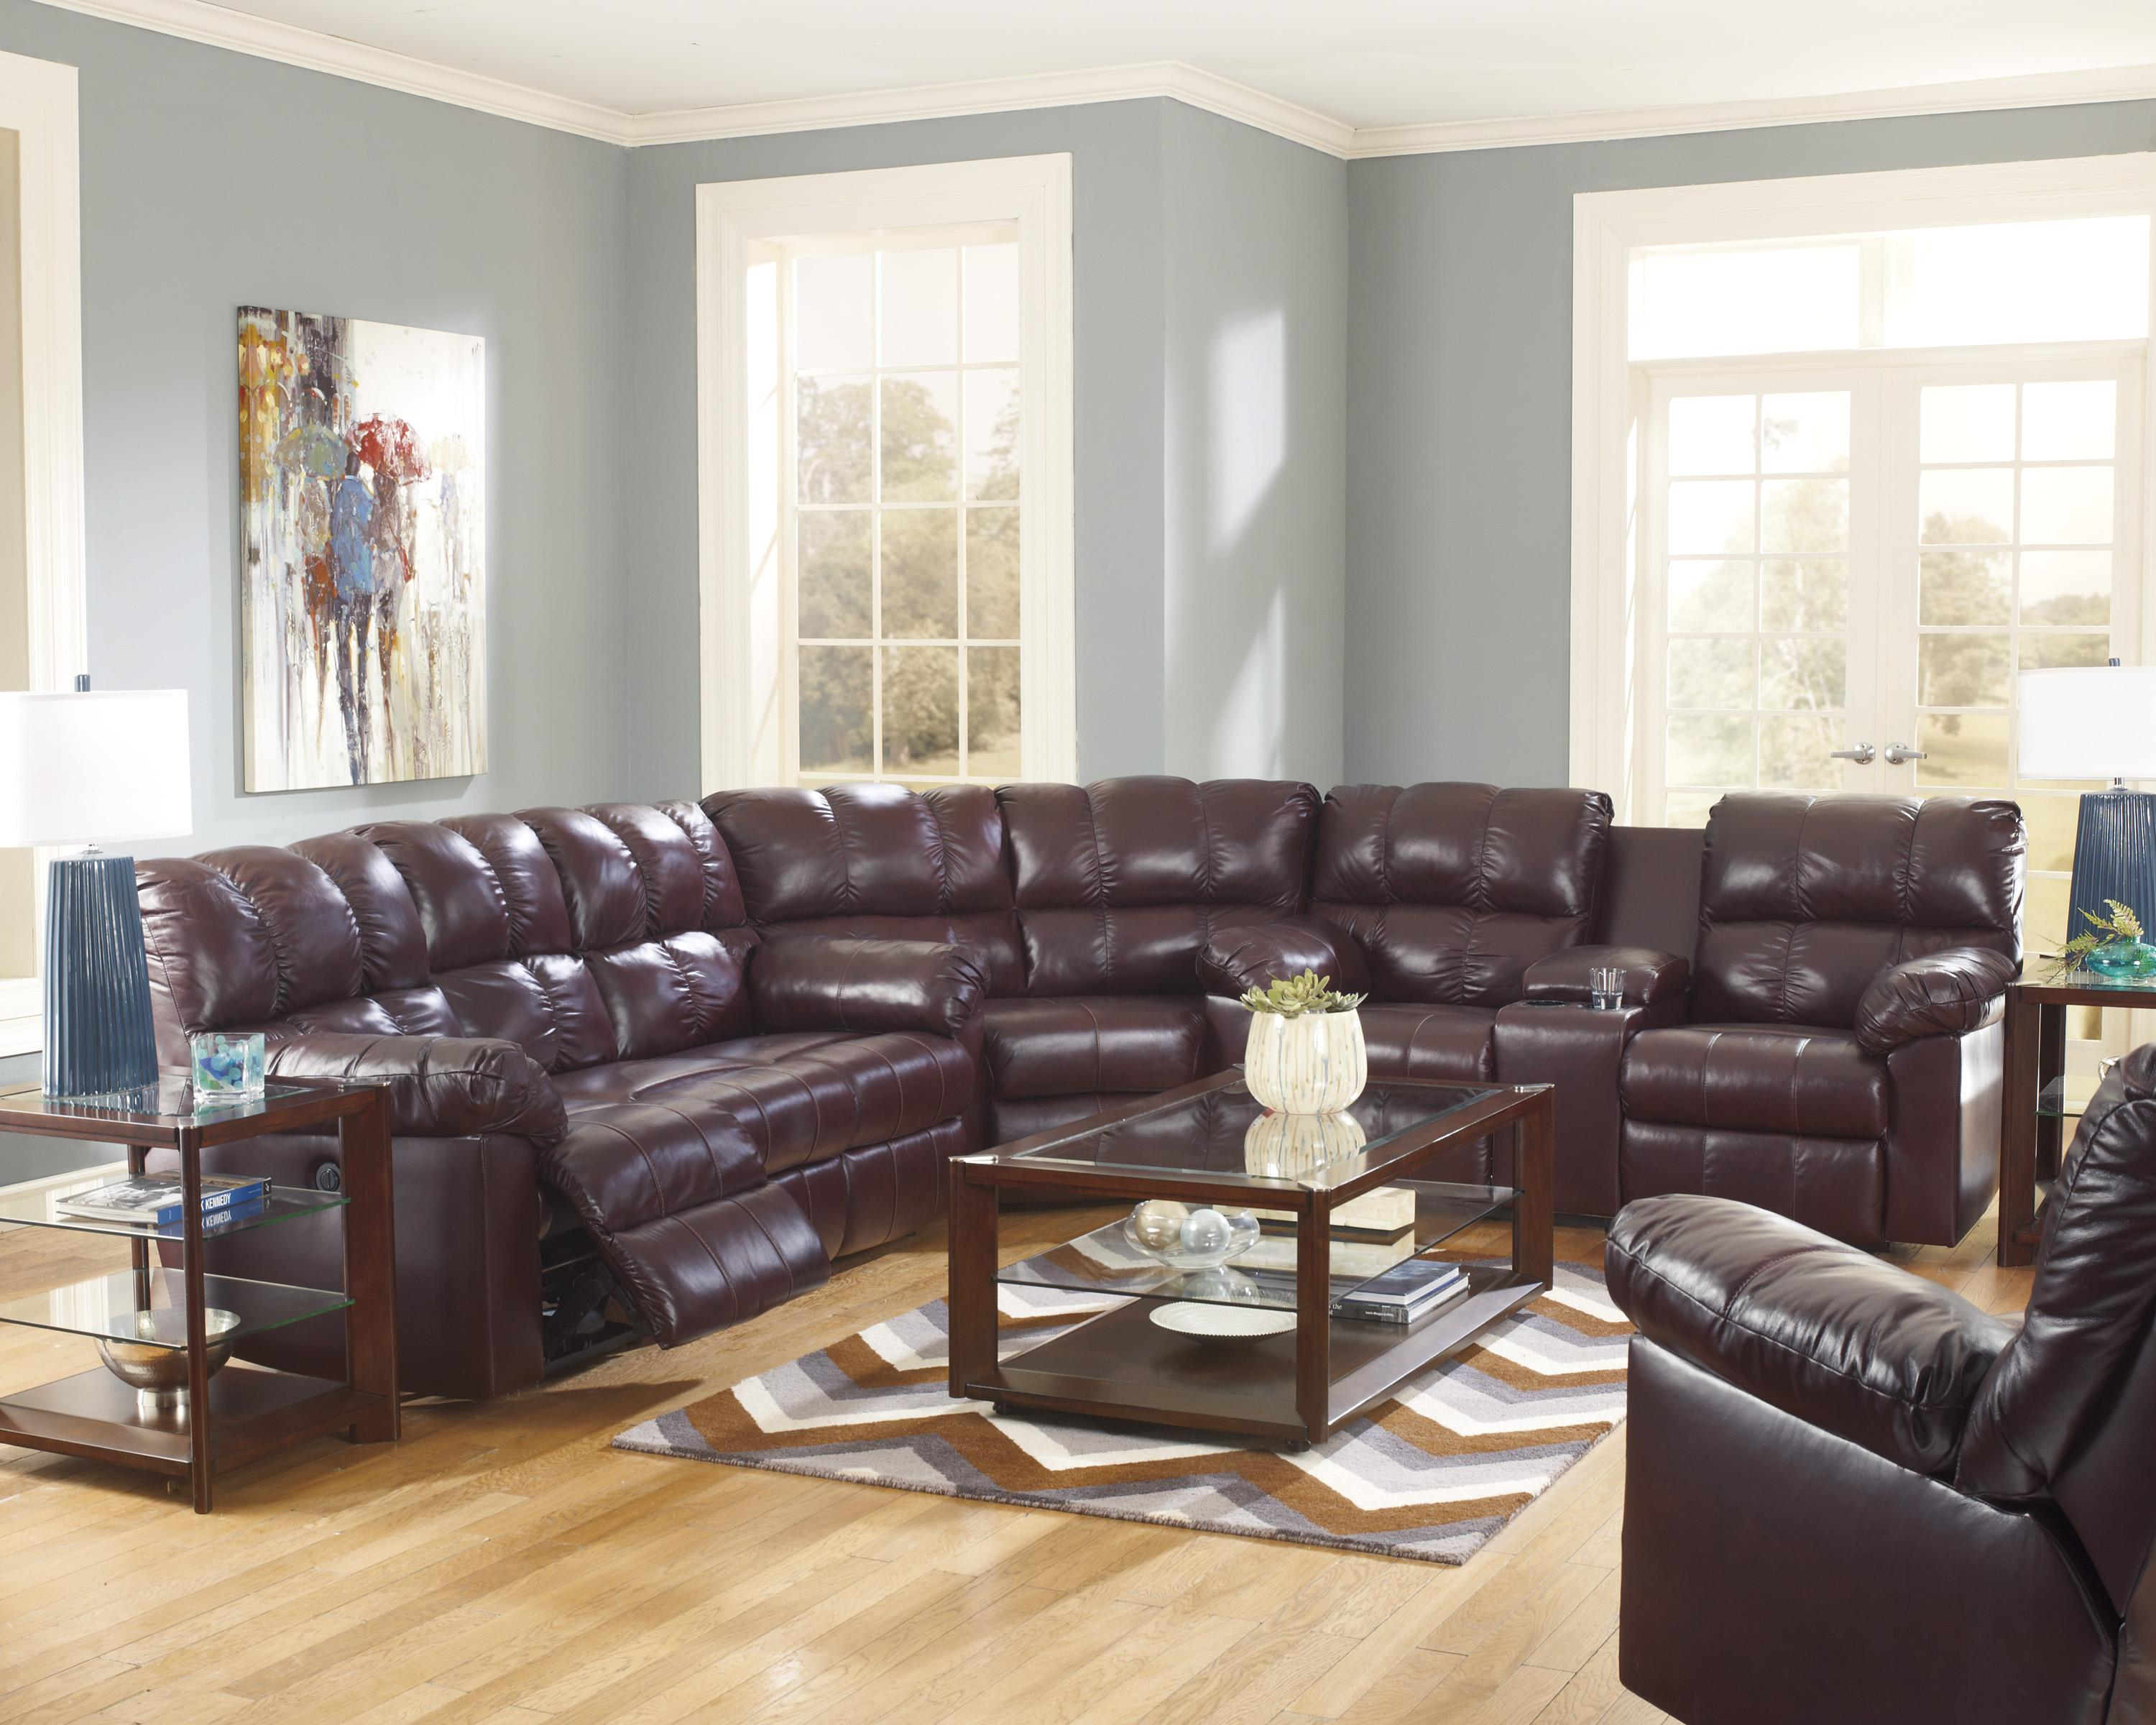 Signature Design by Ashley Kennard - Burgundy Reclining Living Room Group - Item Number: 29000 Living Room Group 1